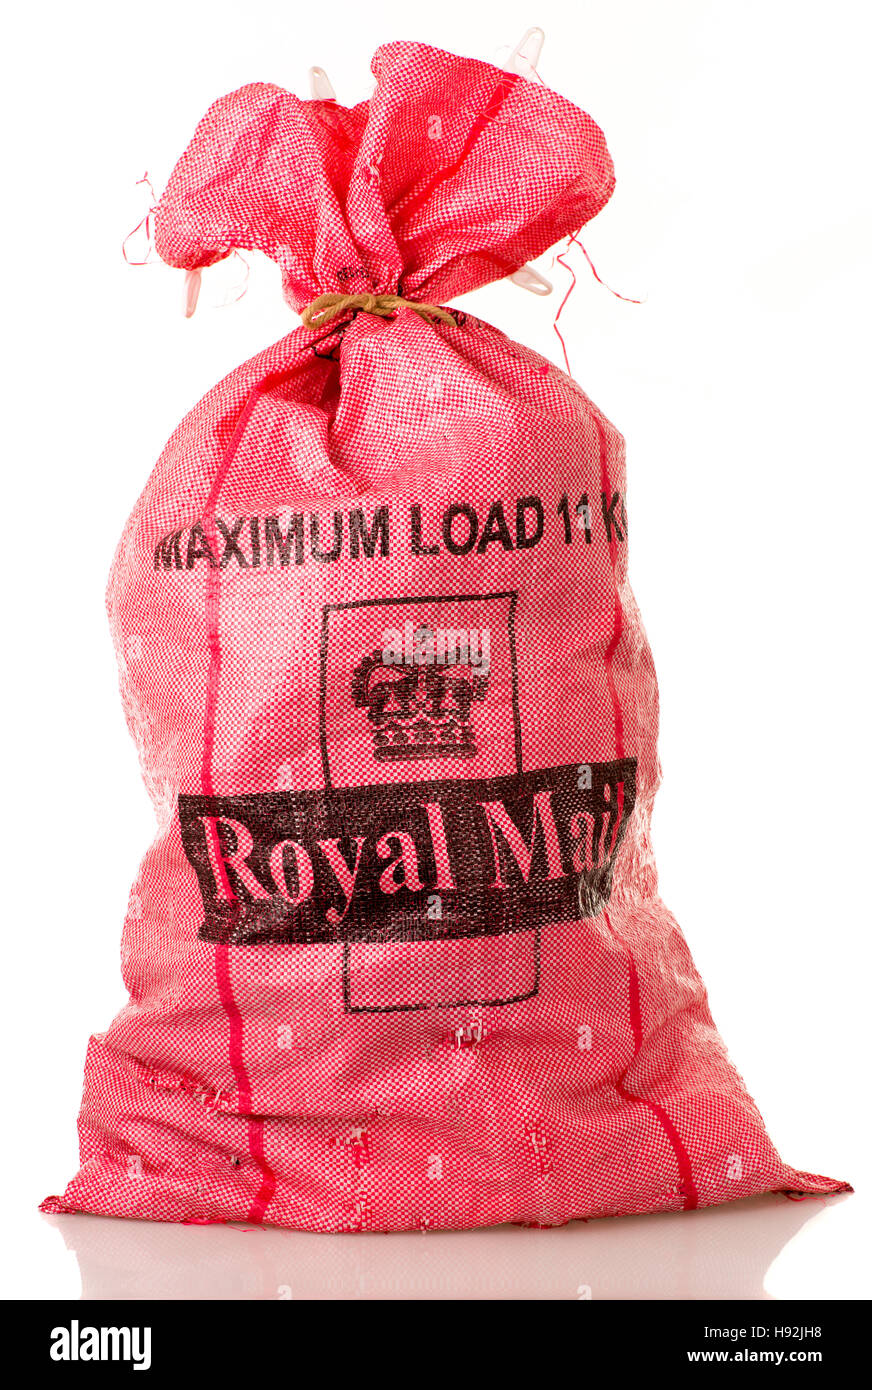 Royal mail sack - Red - Stock Image